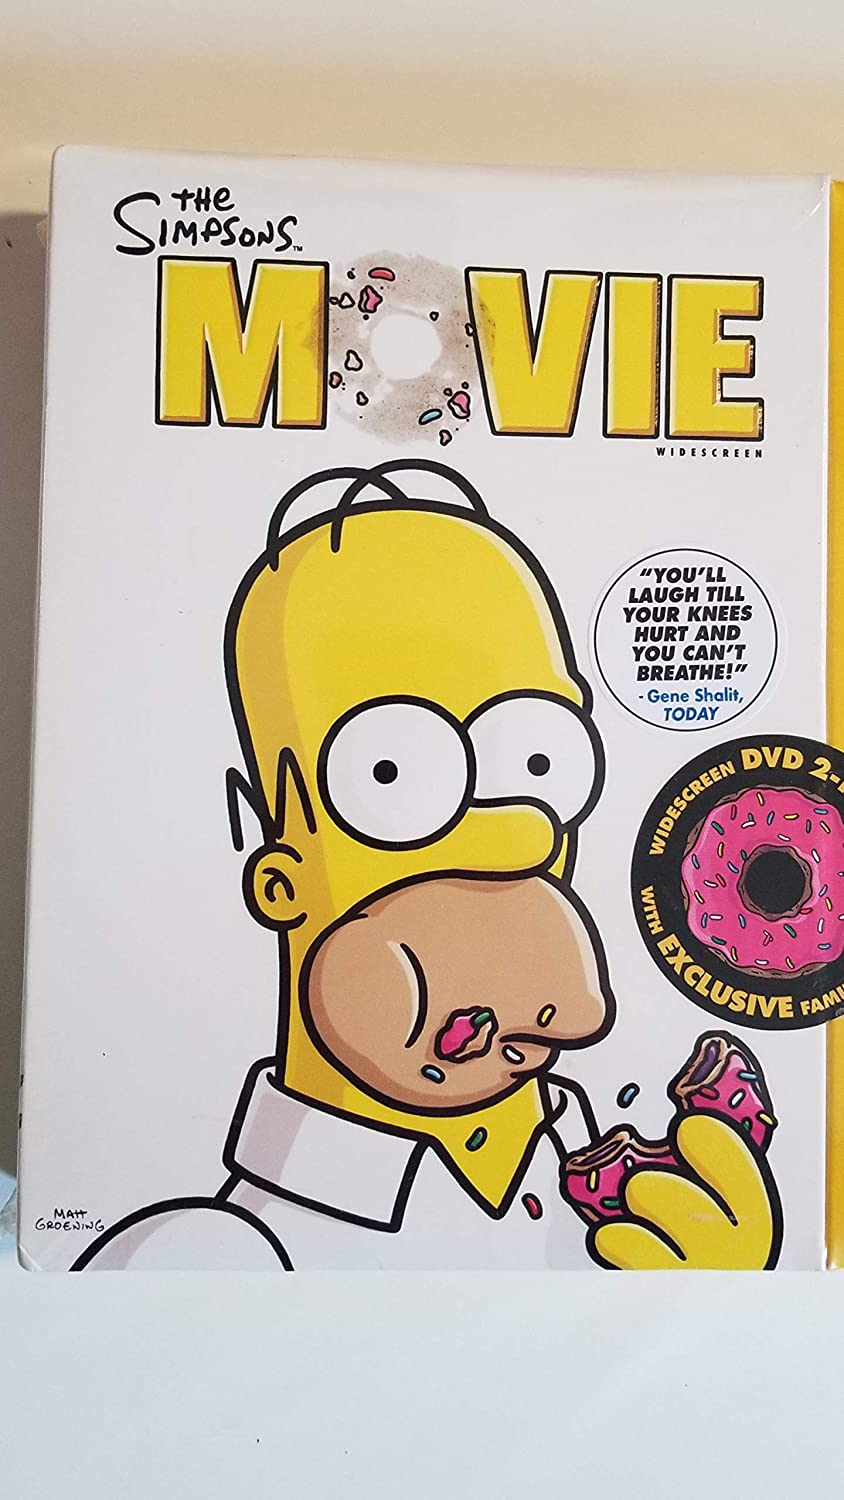 Amazon Com The Simpsons Movie Widescreen Dvd 2 Pack With Exclusive Family Figurines Movies Tv